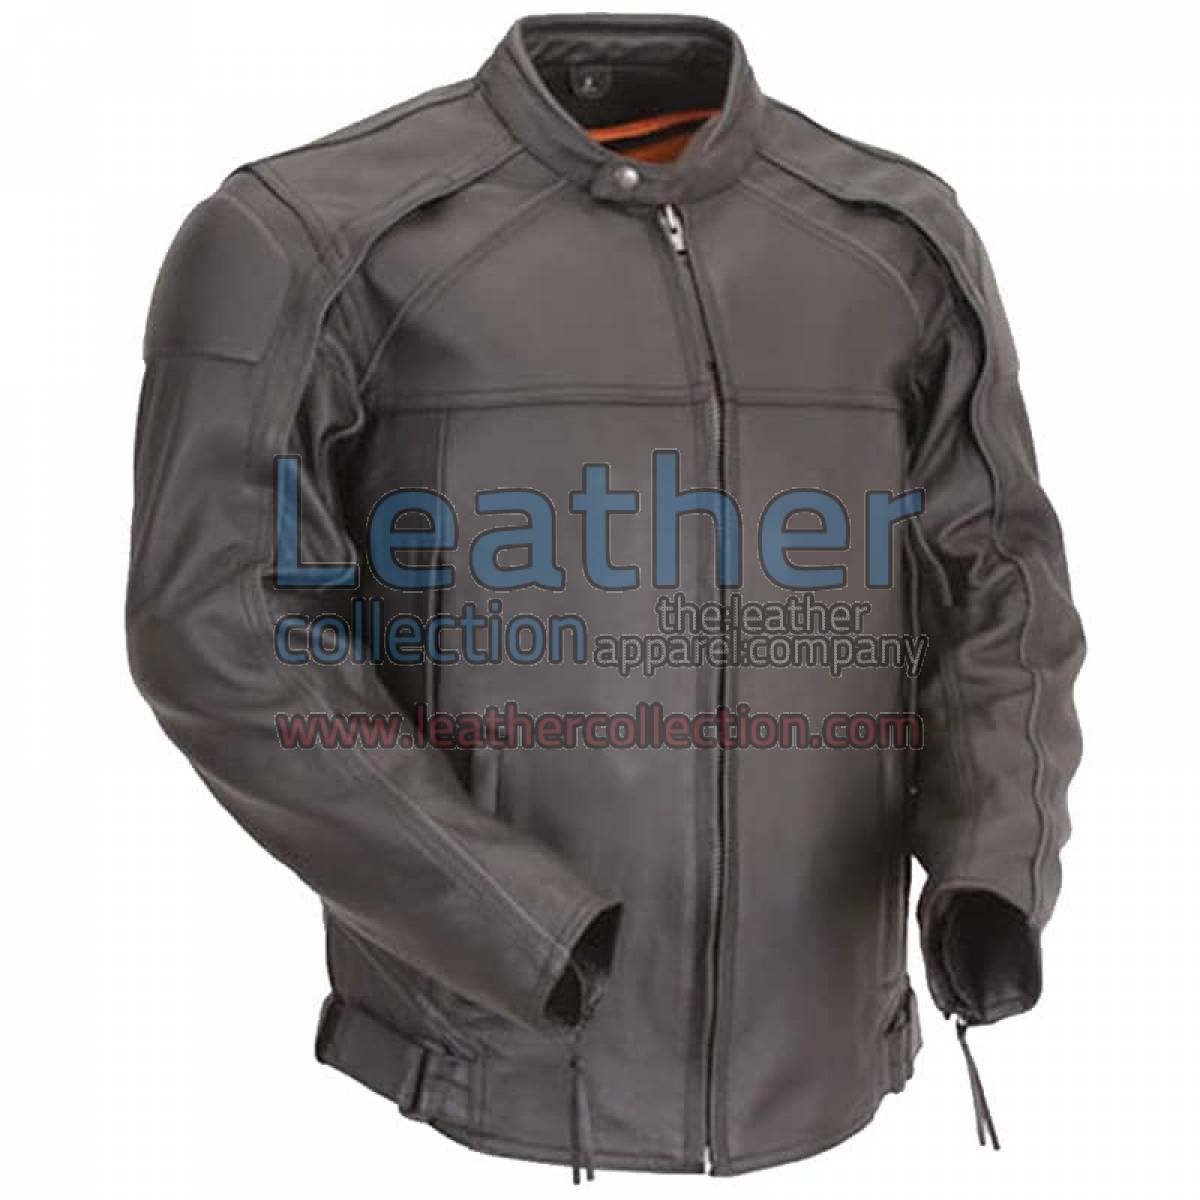 Leather Motorcycle Jacket with Reflective Piping